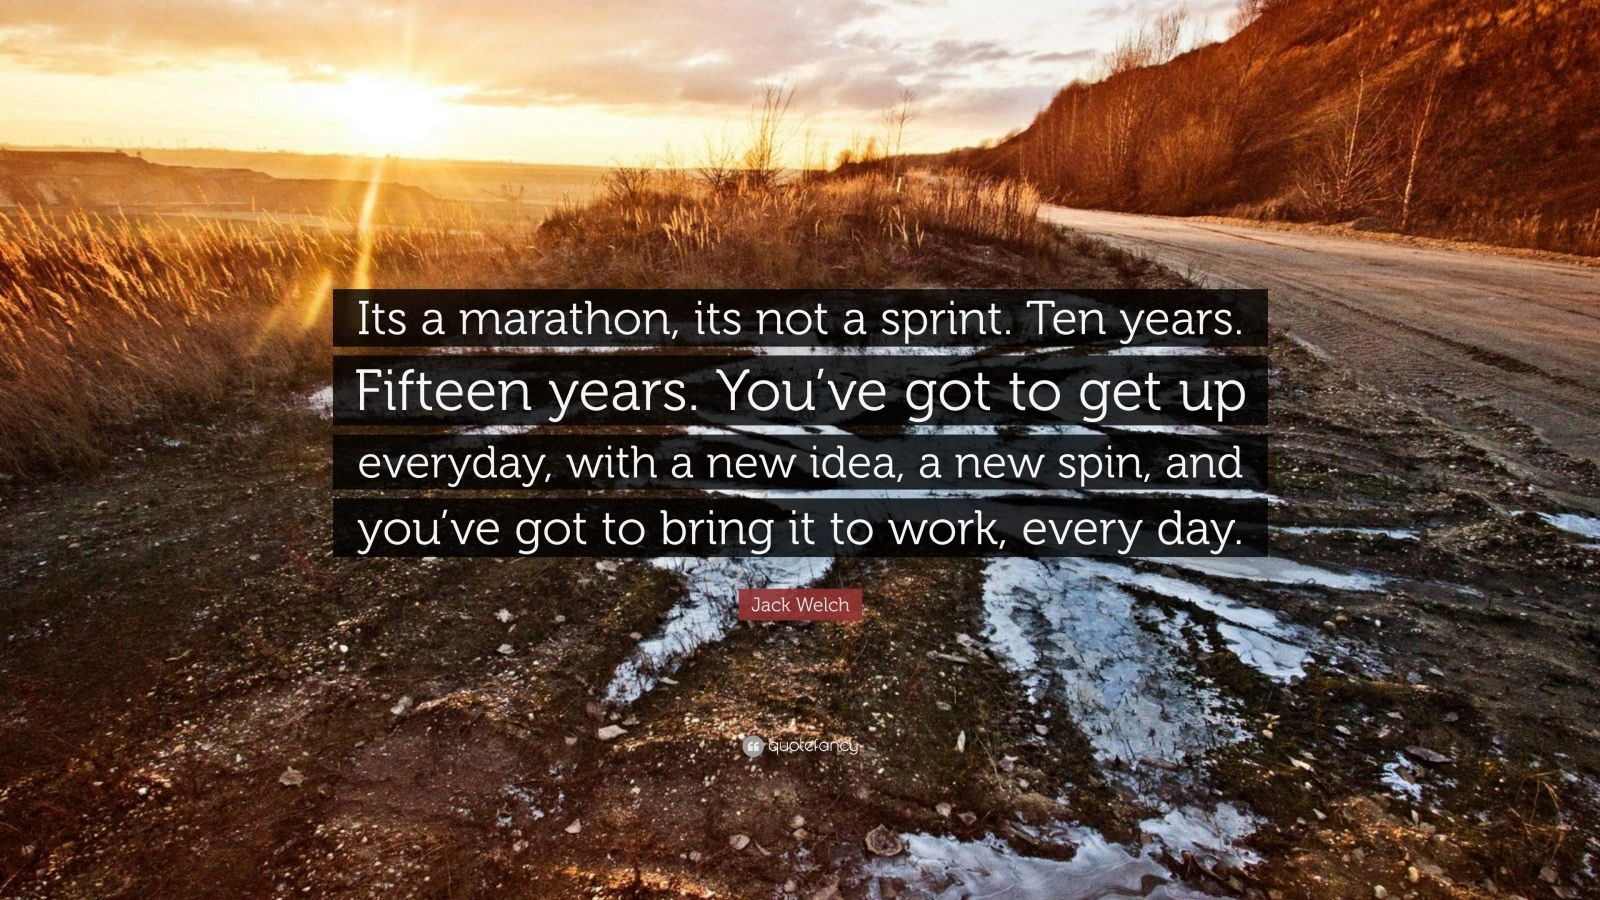 """Jack Welch Quote: """"Its a marathon, its not a sprint. Ten years. Fifteen years. You've got to get up everyday, with a new idea, a new spin, and you've got to bring it to work, every day."""""""